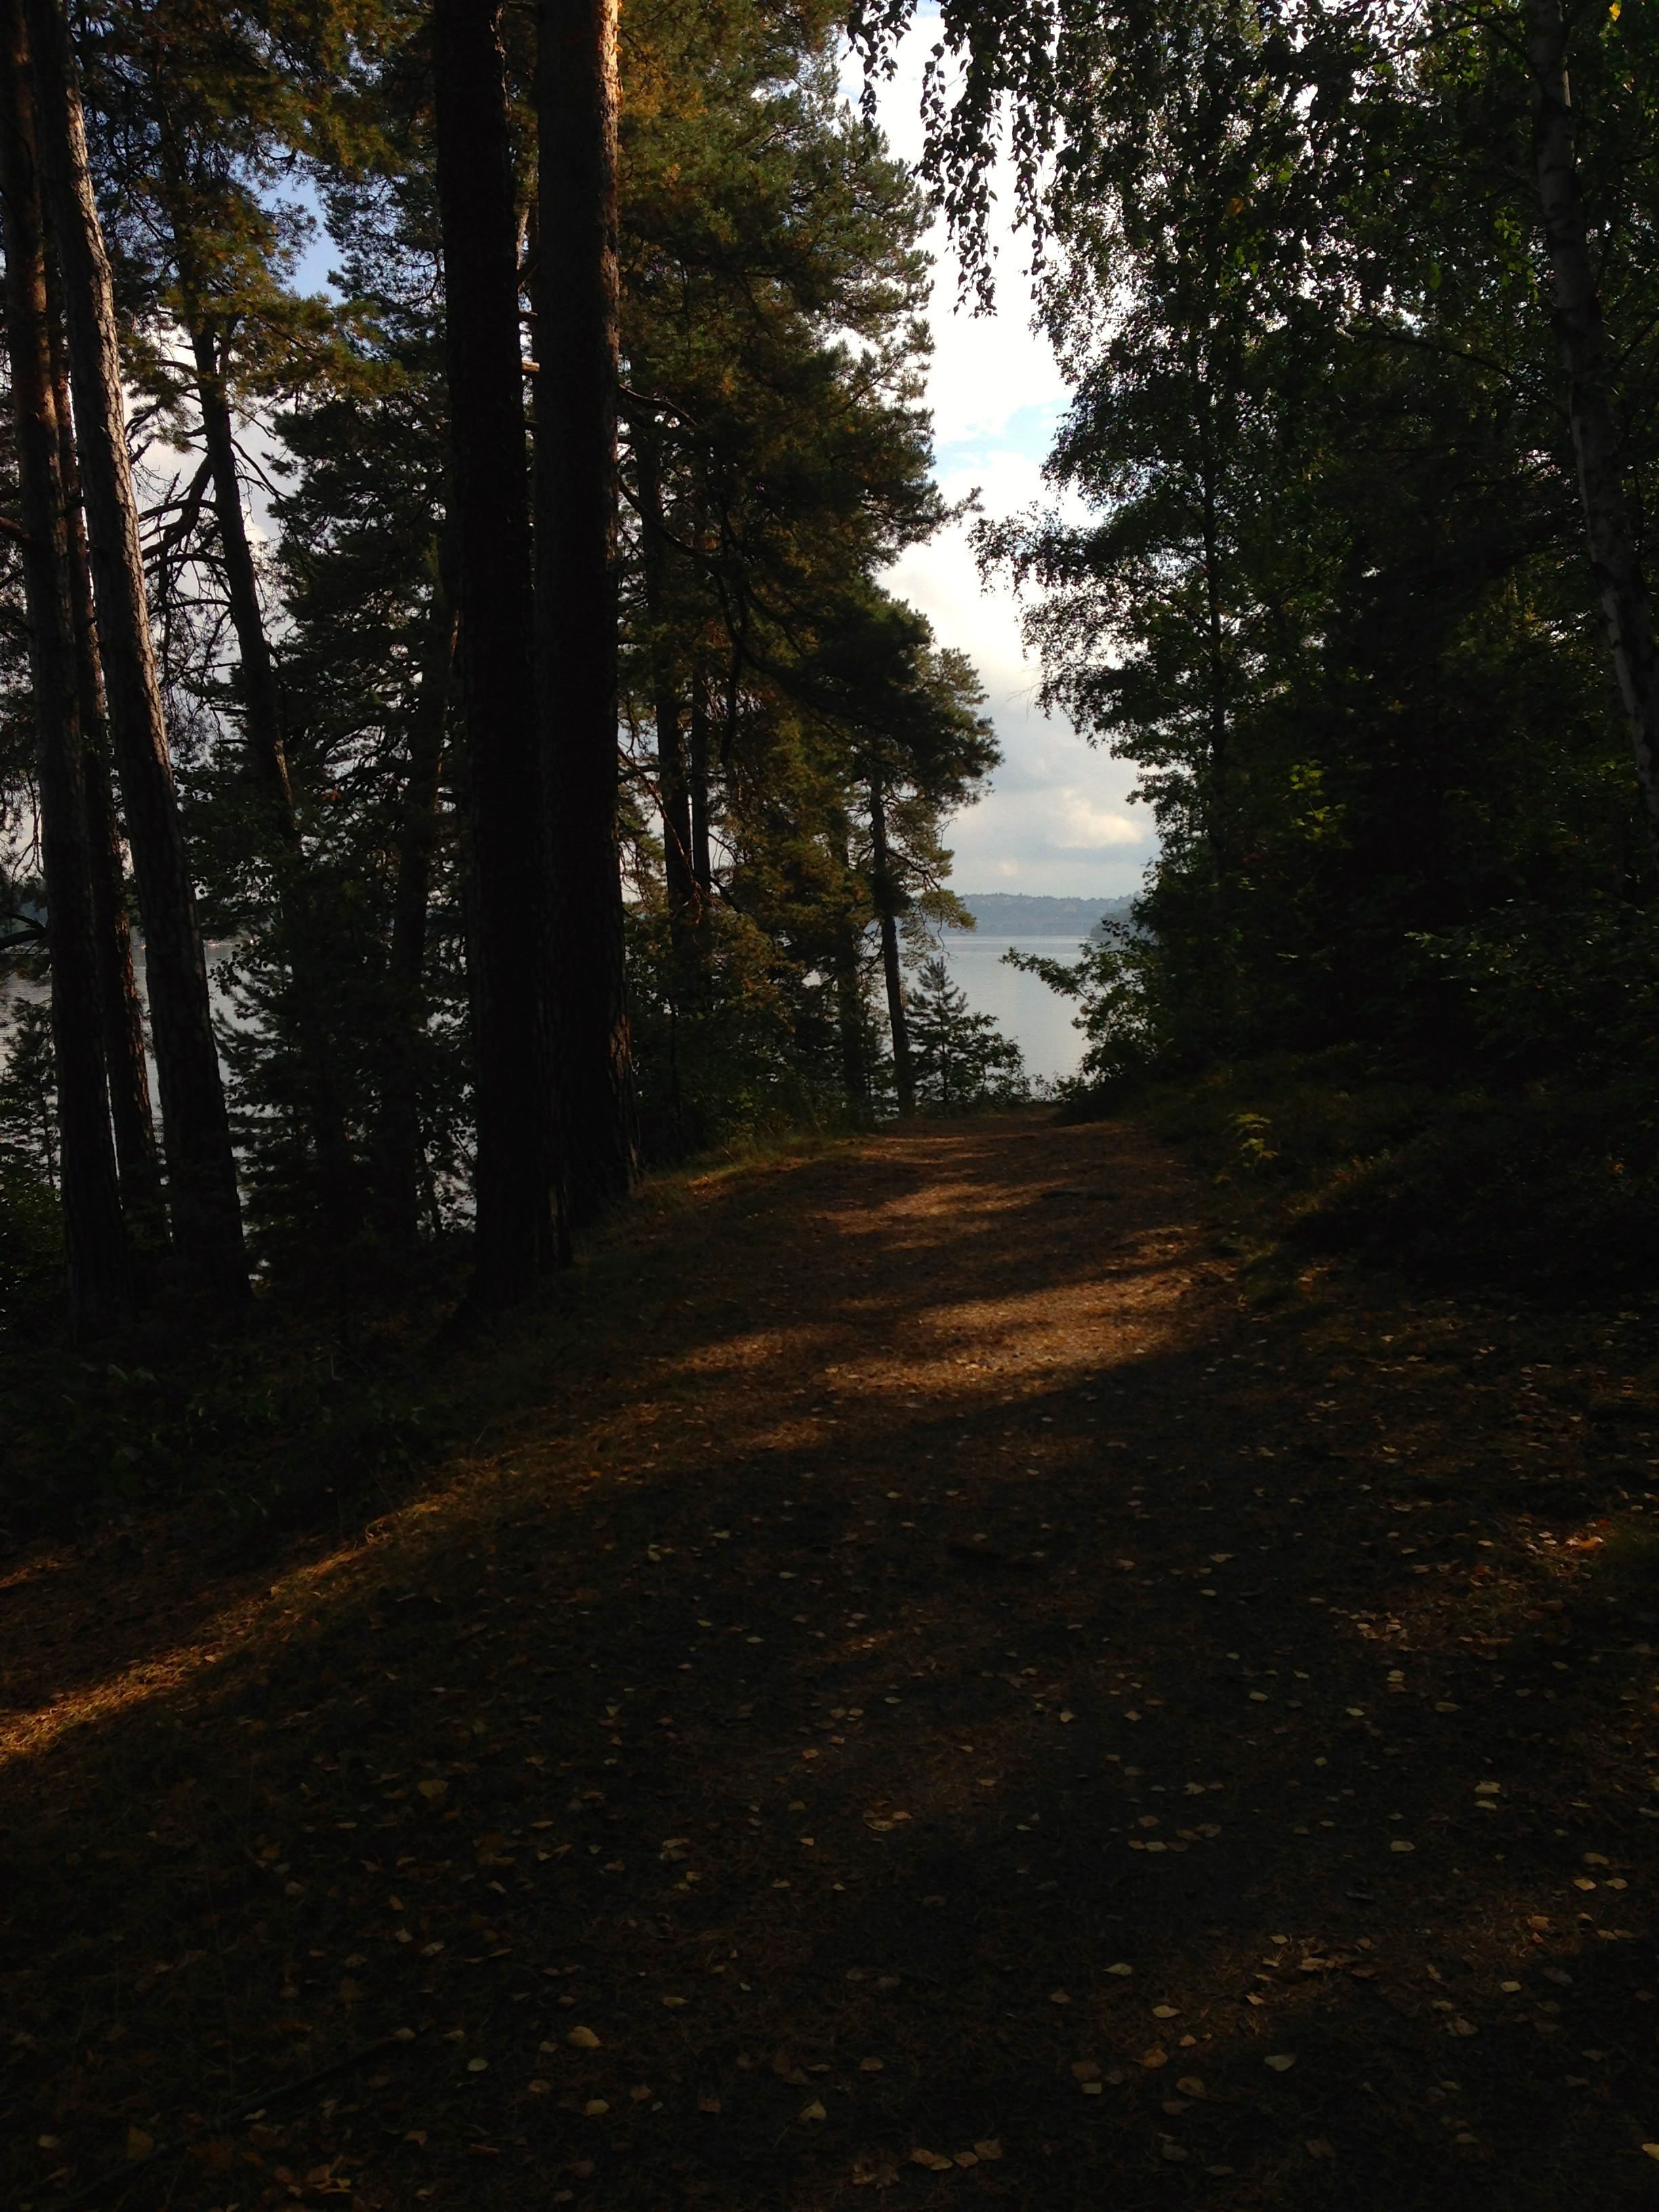 ...after that i continue through the calm and peaceful woods of djurgarden...